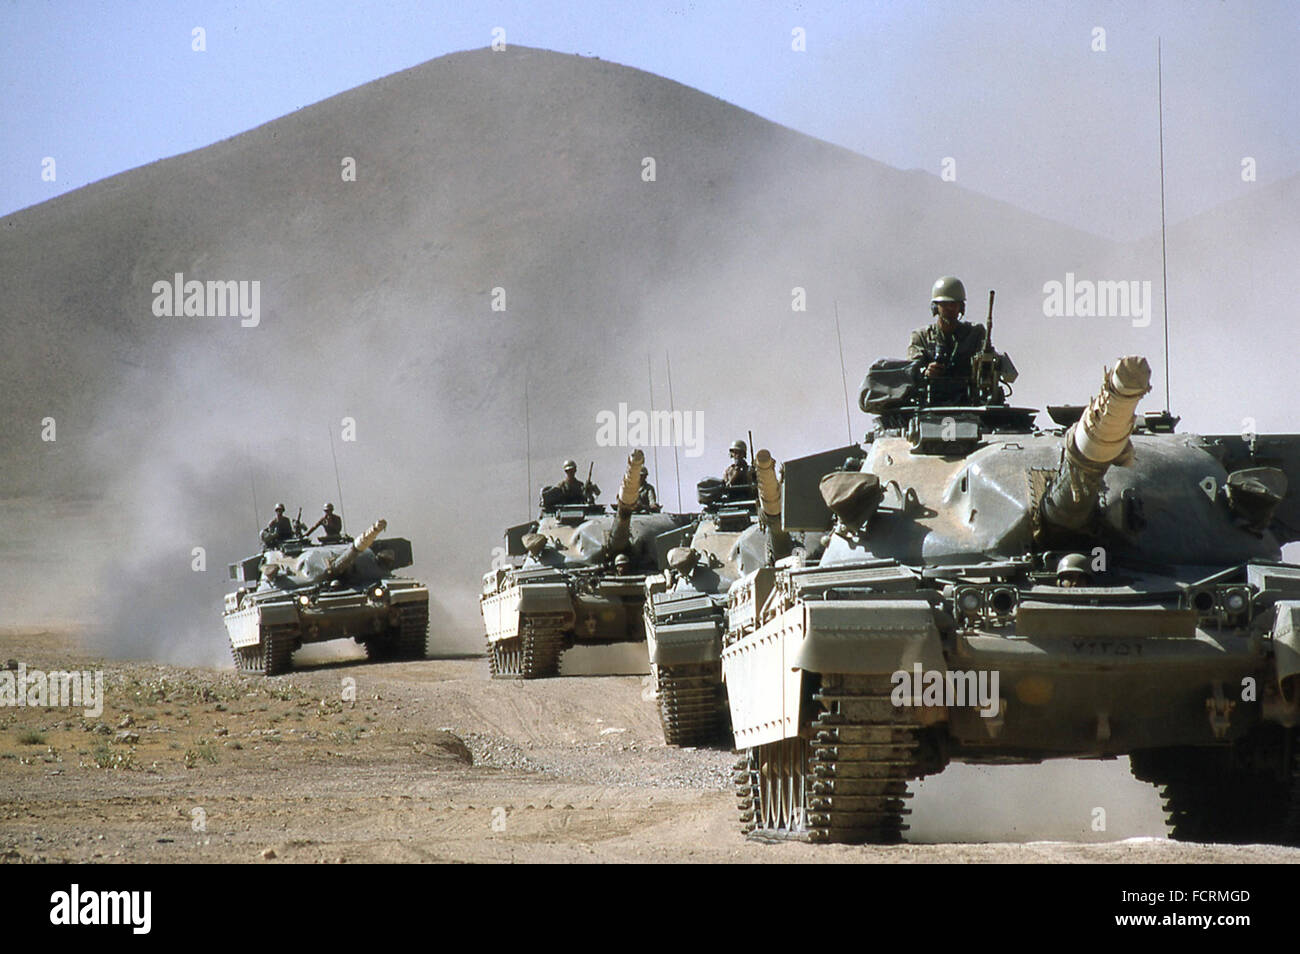 http://c7.alamy.com/comp/FCRMGD/iranian-army-tanks-on-military-exercise-in-the-desert-near-persian-FCRMGD.jpg